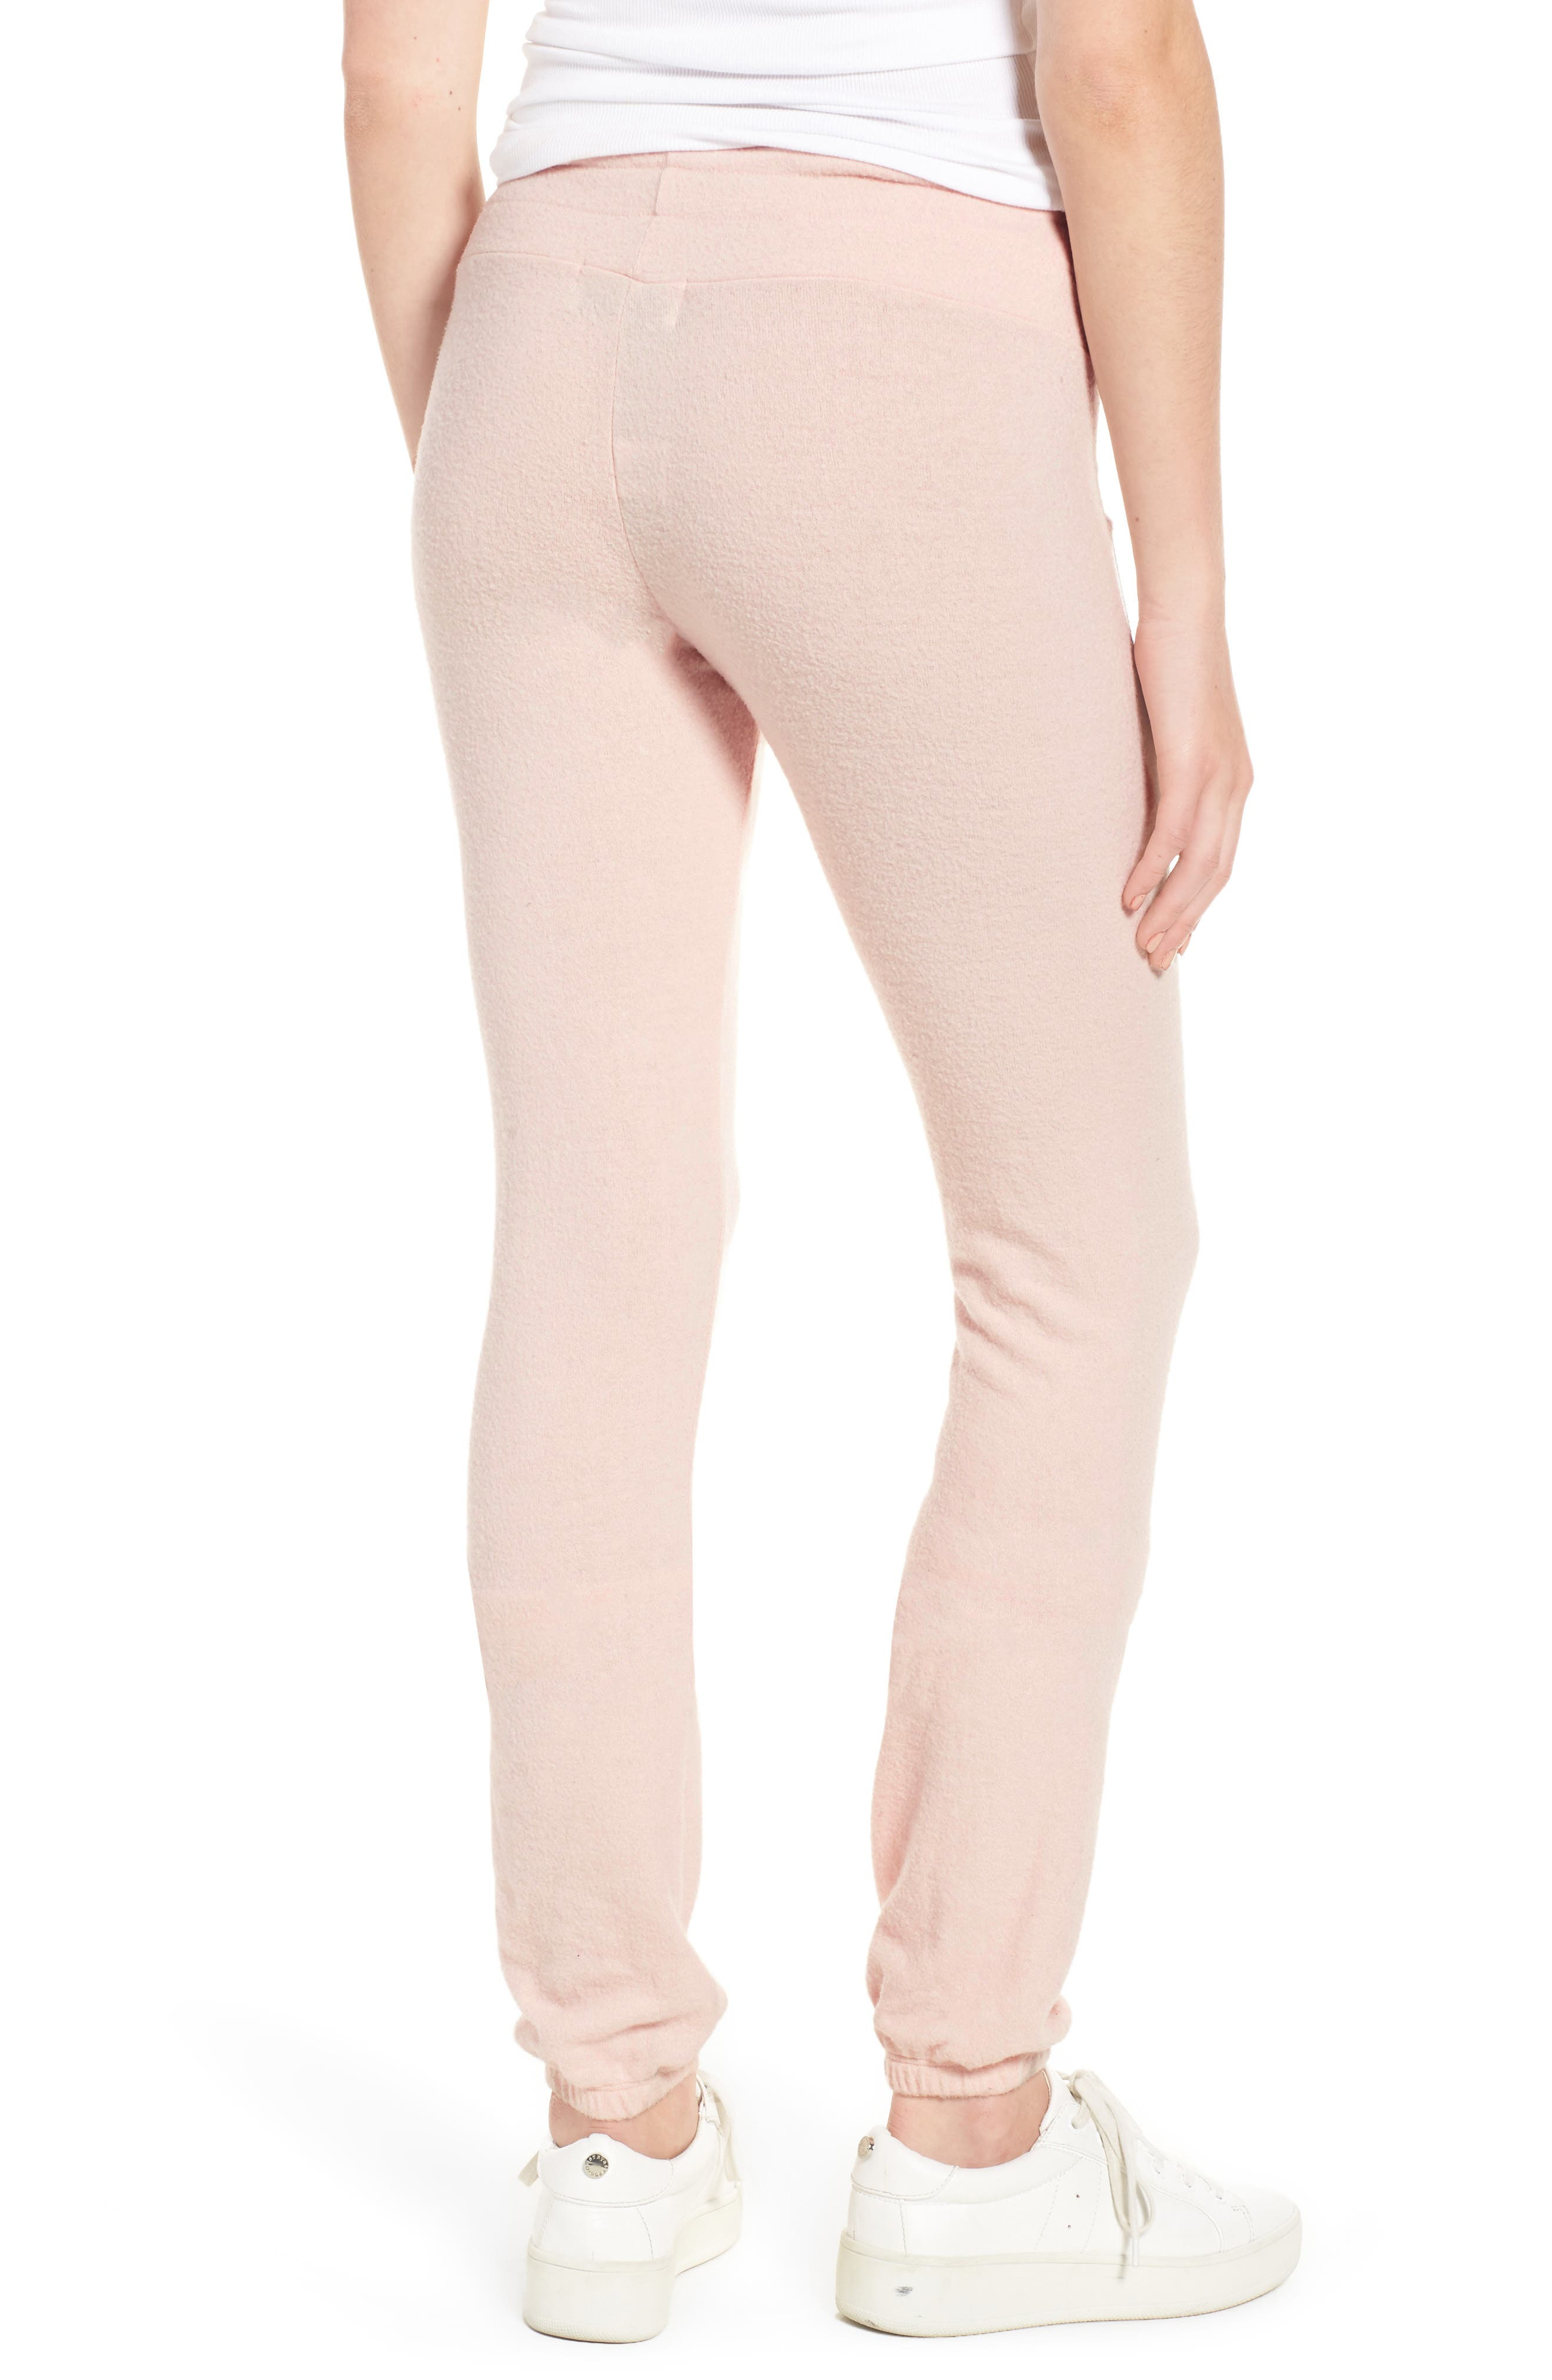 Rosé All Day Skinny Pants,                             Alternate thumbnail 3, color,                             Rose